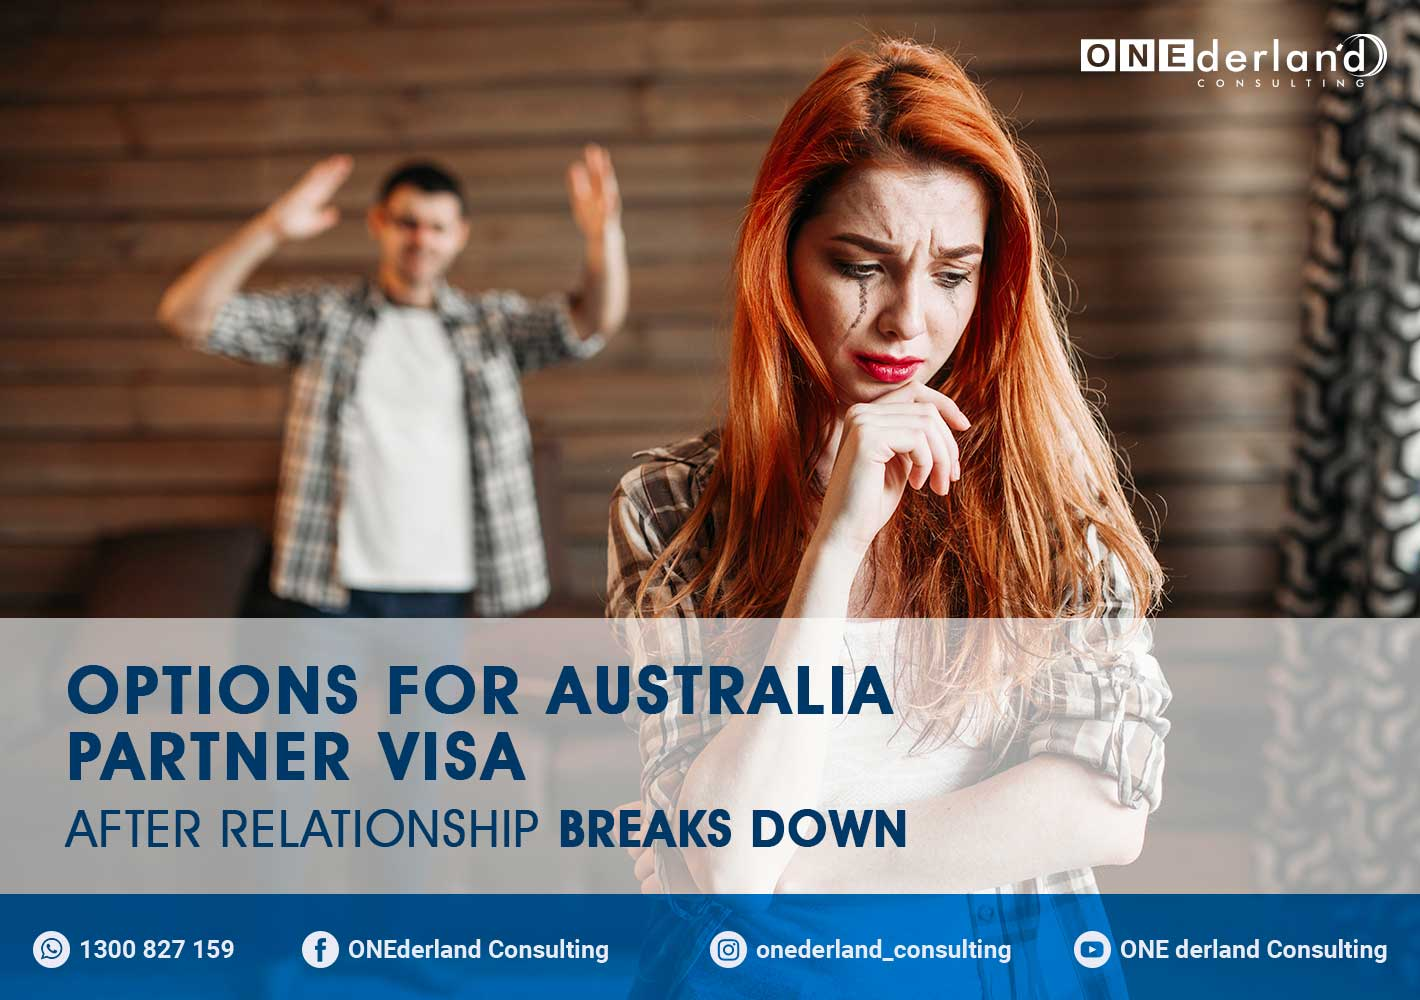 Options for Australia Partner Visa After Relationship Breaks Down